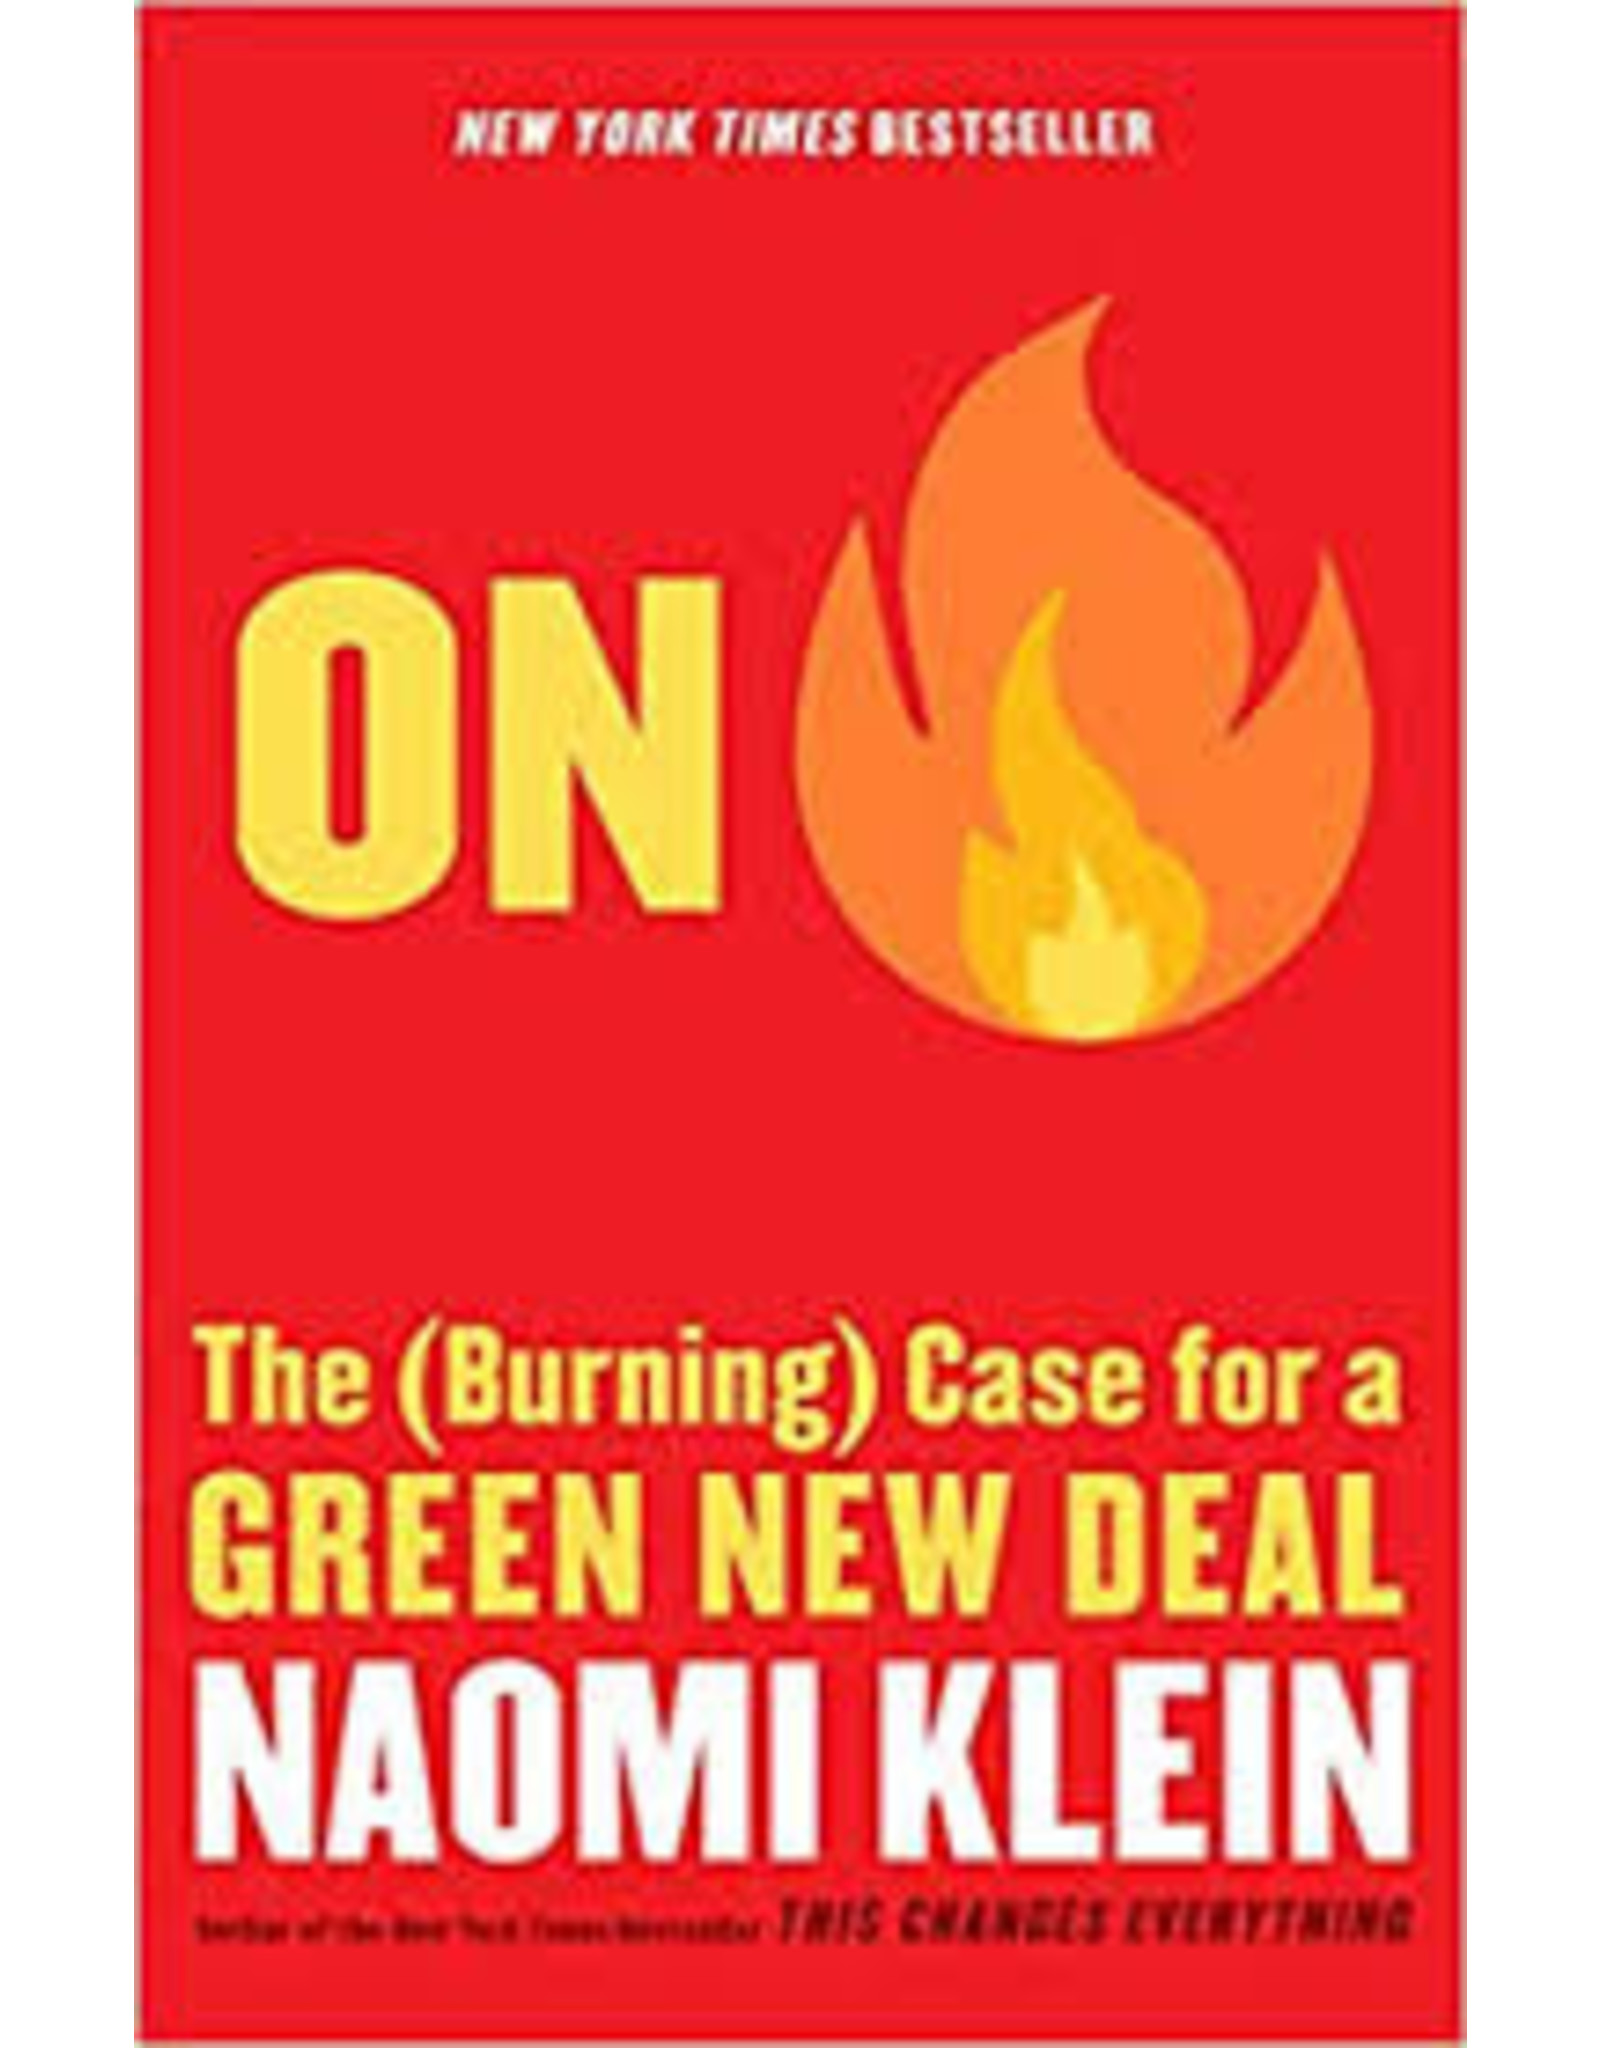 Books On Fire: The Burning Case for the Green New Deal by Naomi Klein